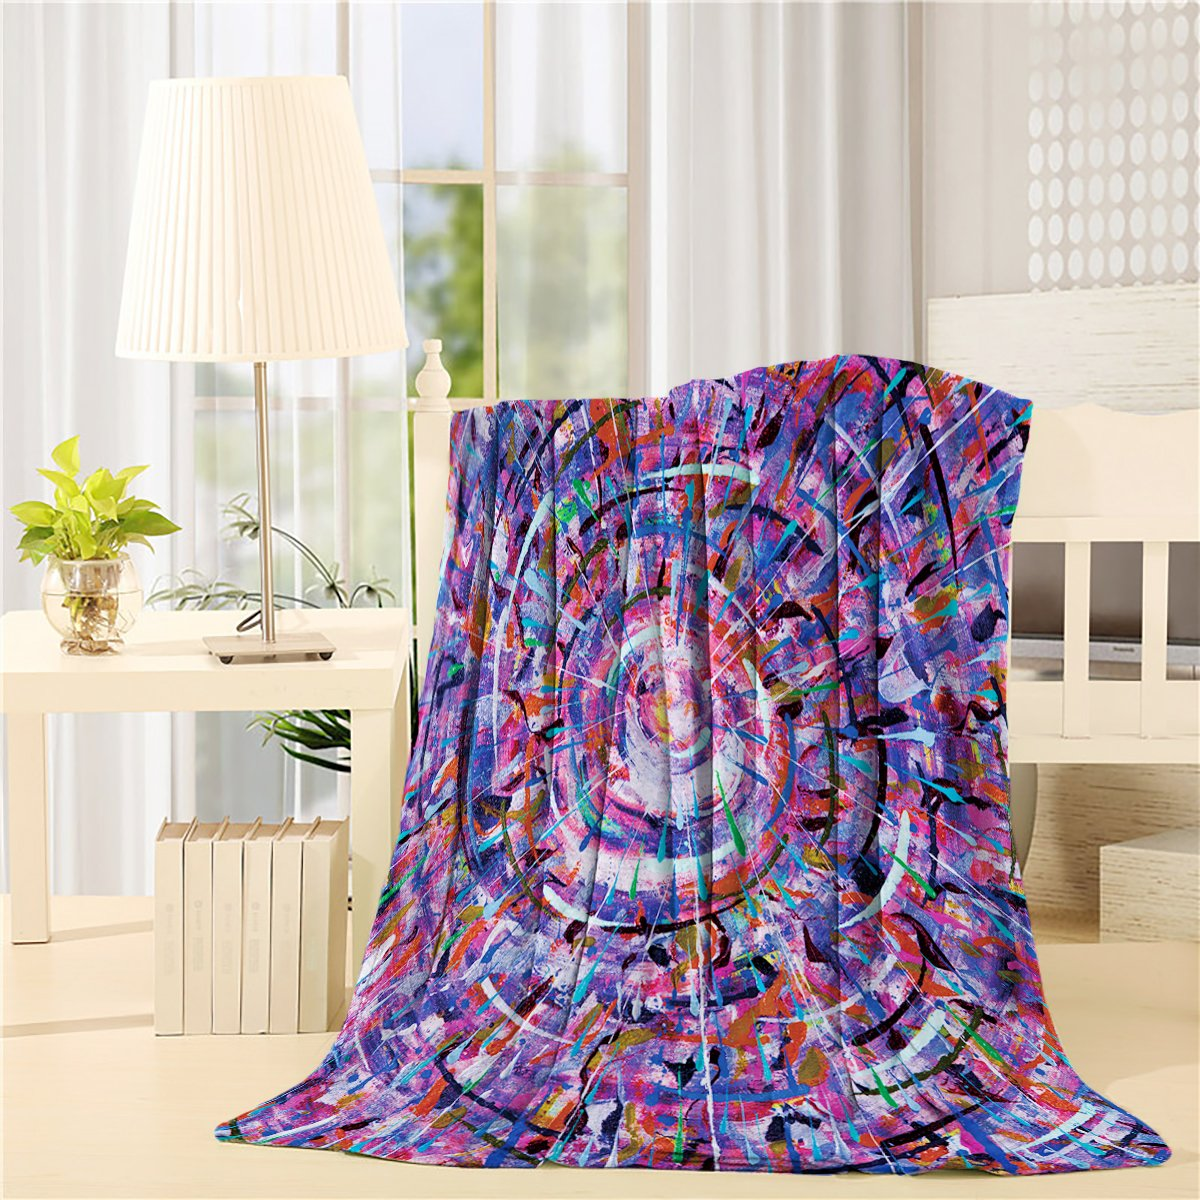 free shipping CHARMHOME Ultra Plush Comfort Throw Blanket 40 x 50 inch Lightweight Flannel Fleece Bed Blanket for Bedroom Living Rooms Sofa Couch - Abstract Art Paintings Purple